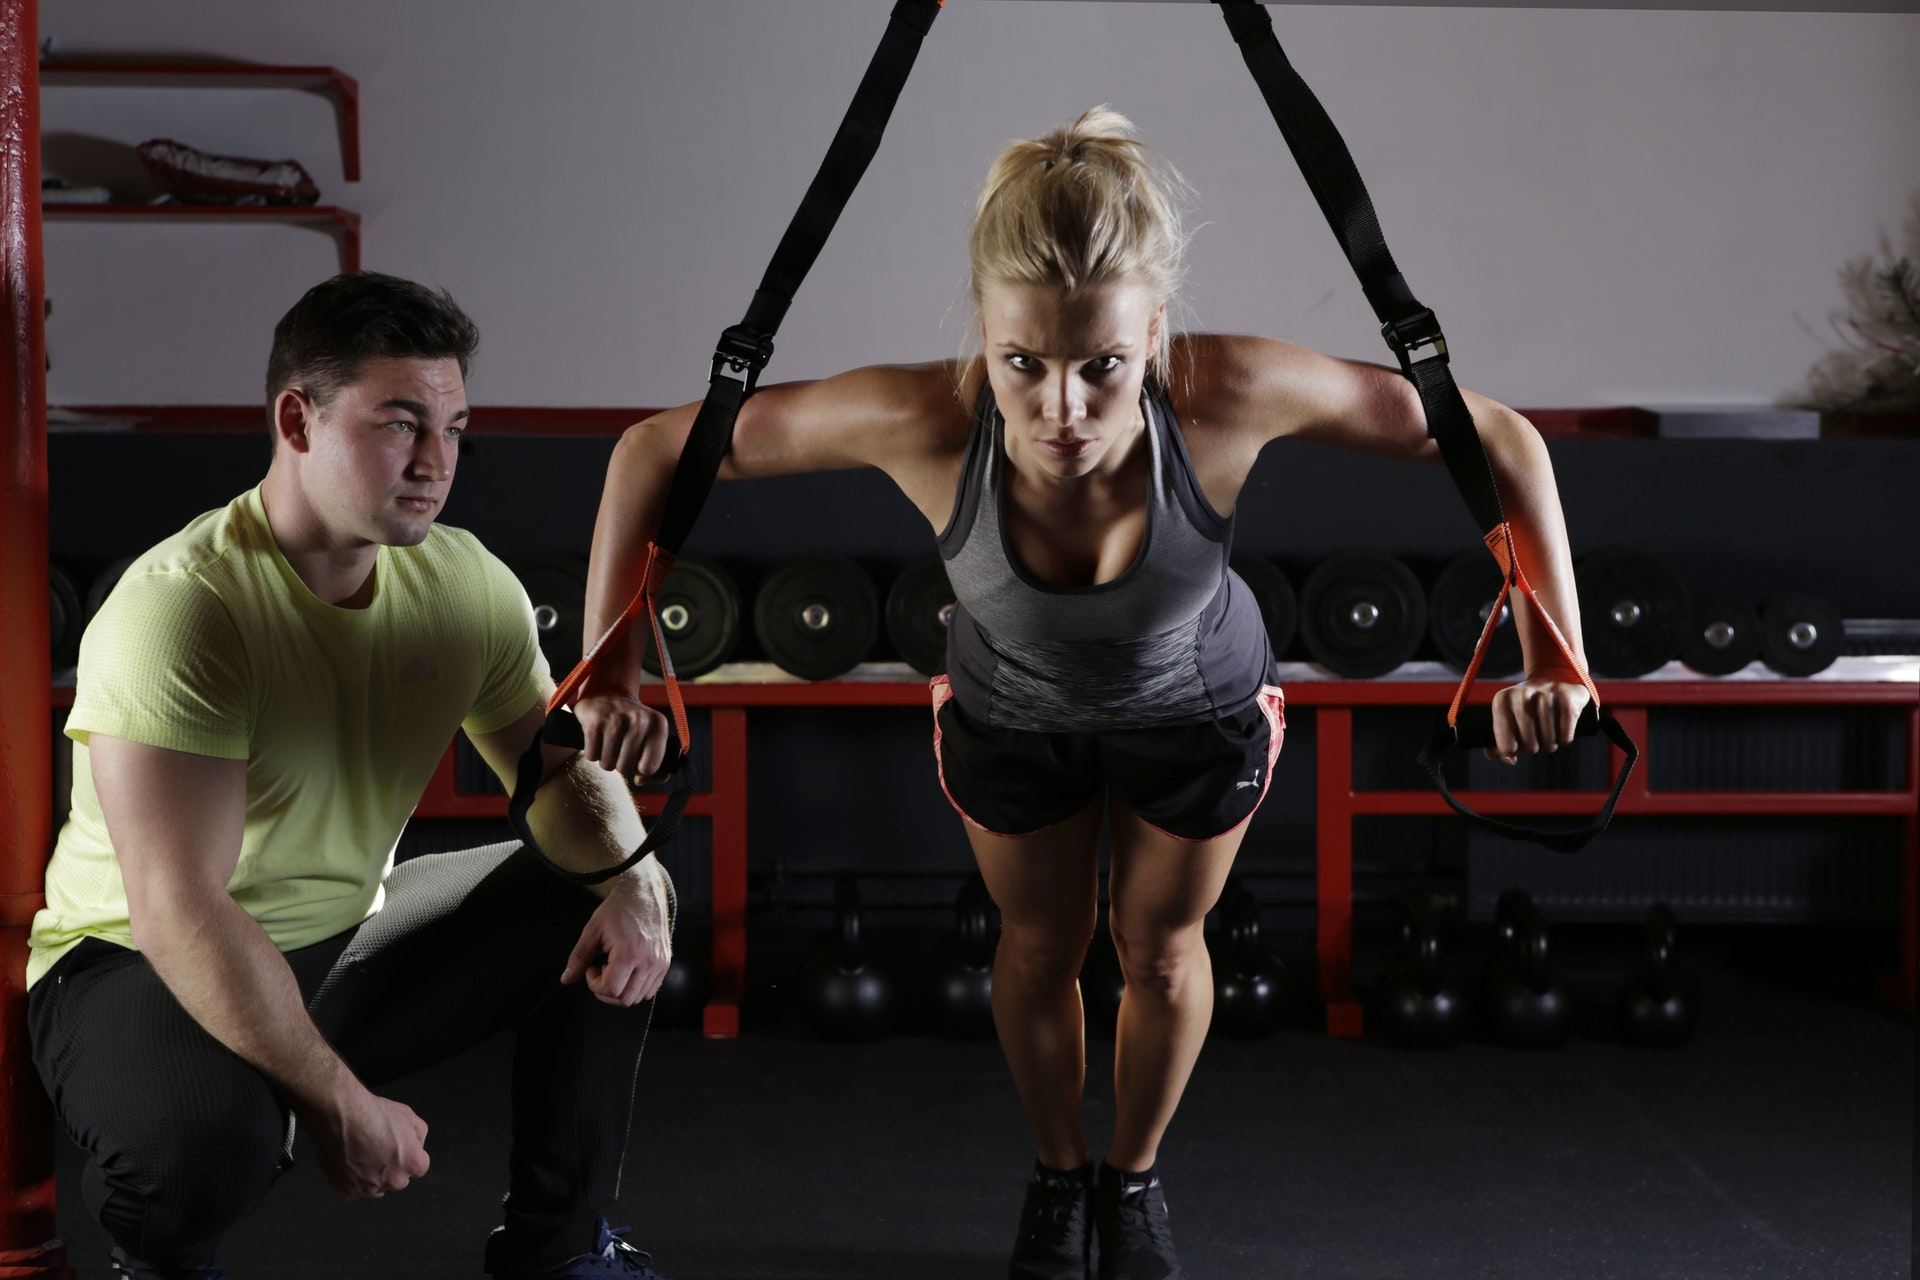 How to Use Chiropractic Care to Increase Sports Performance